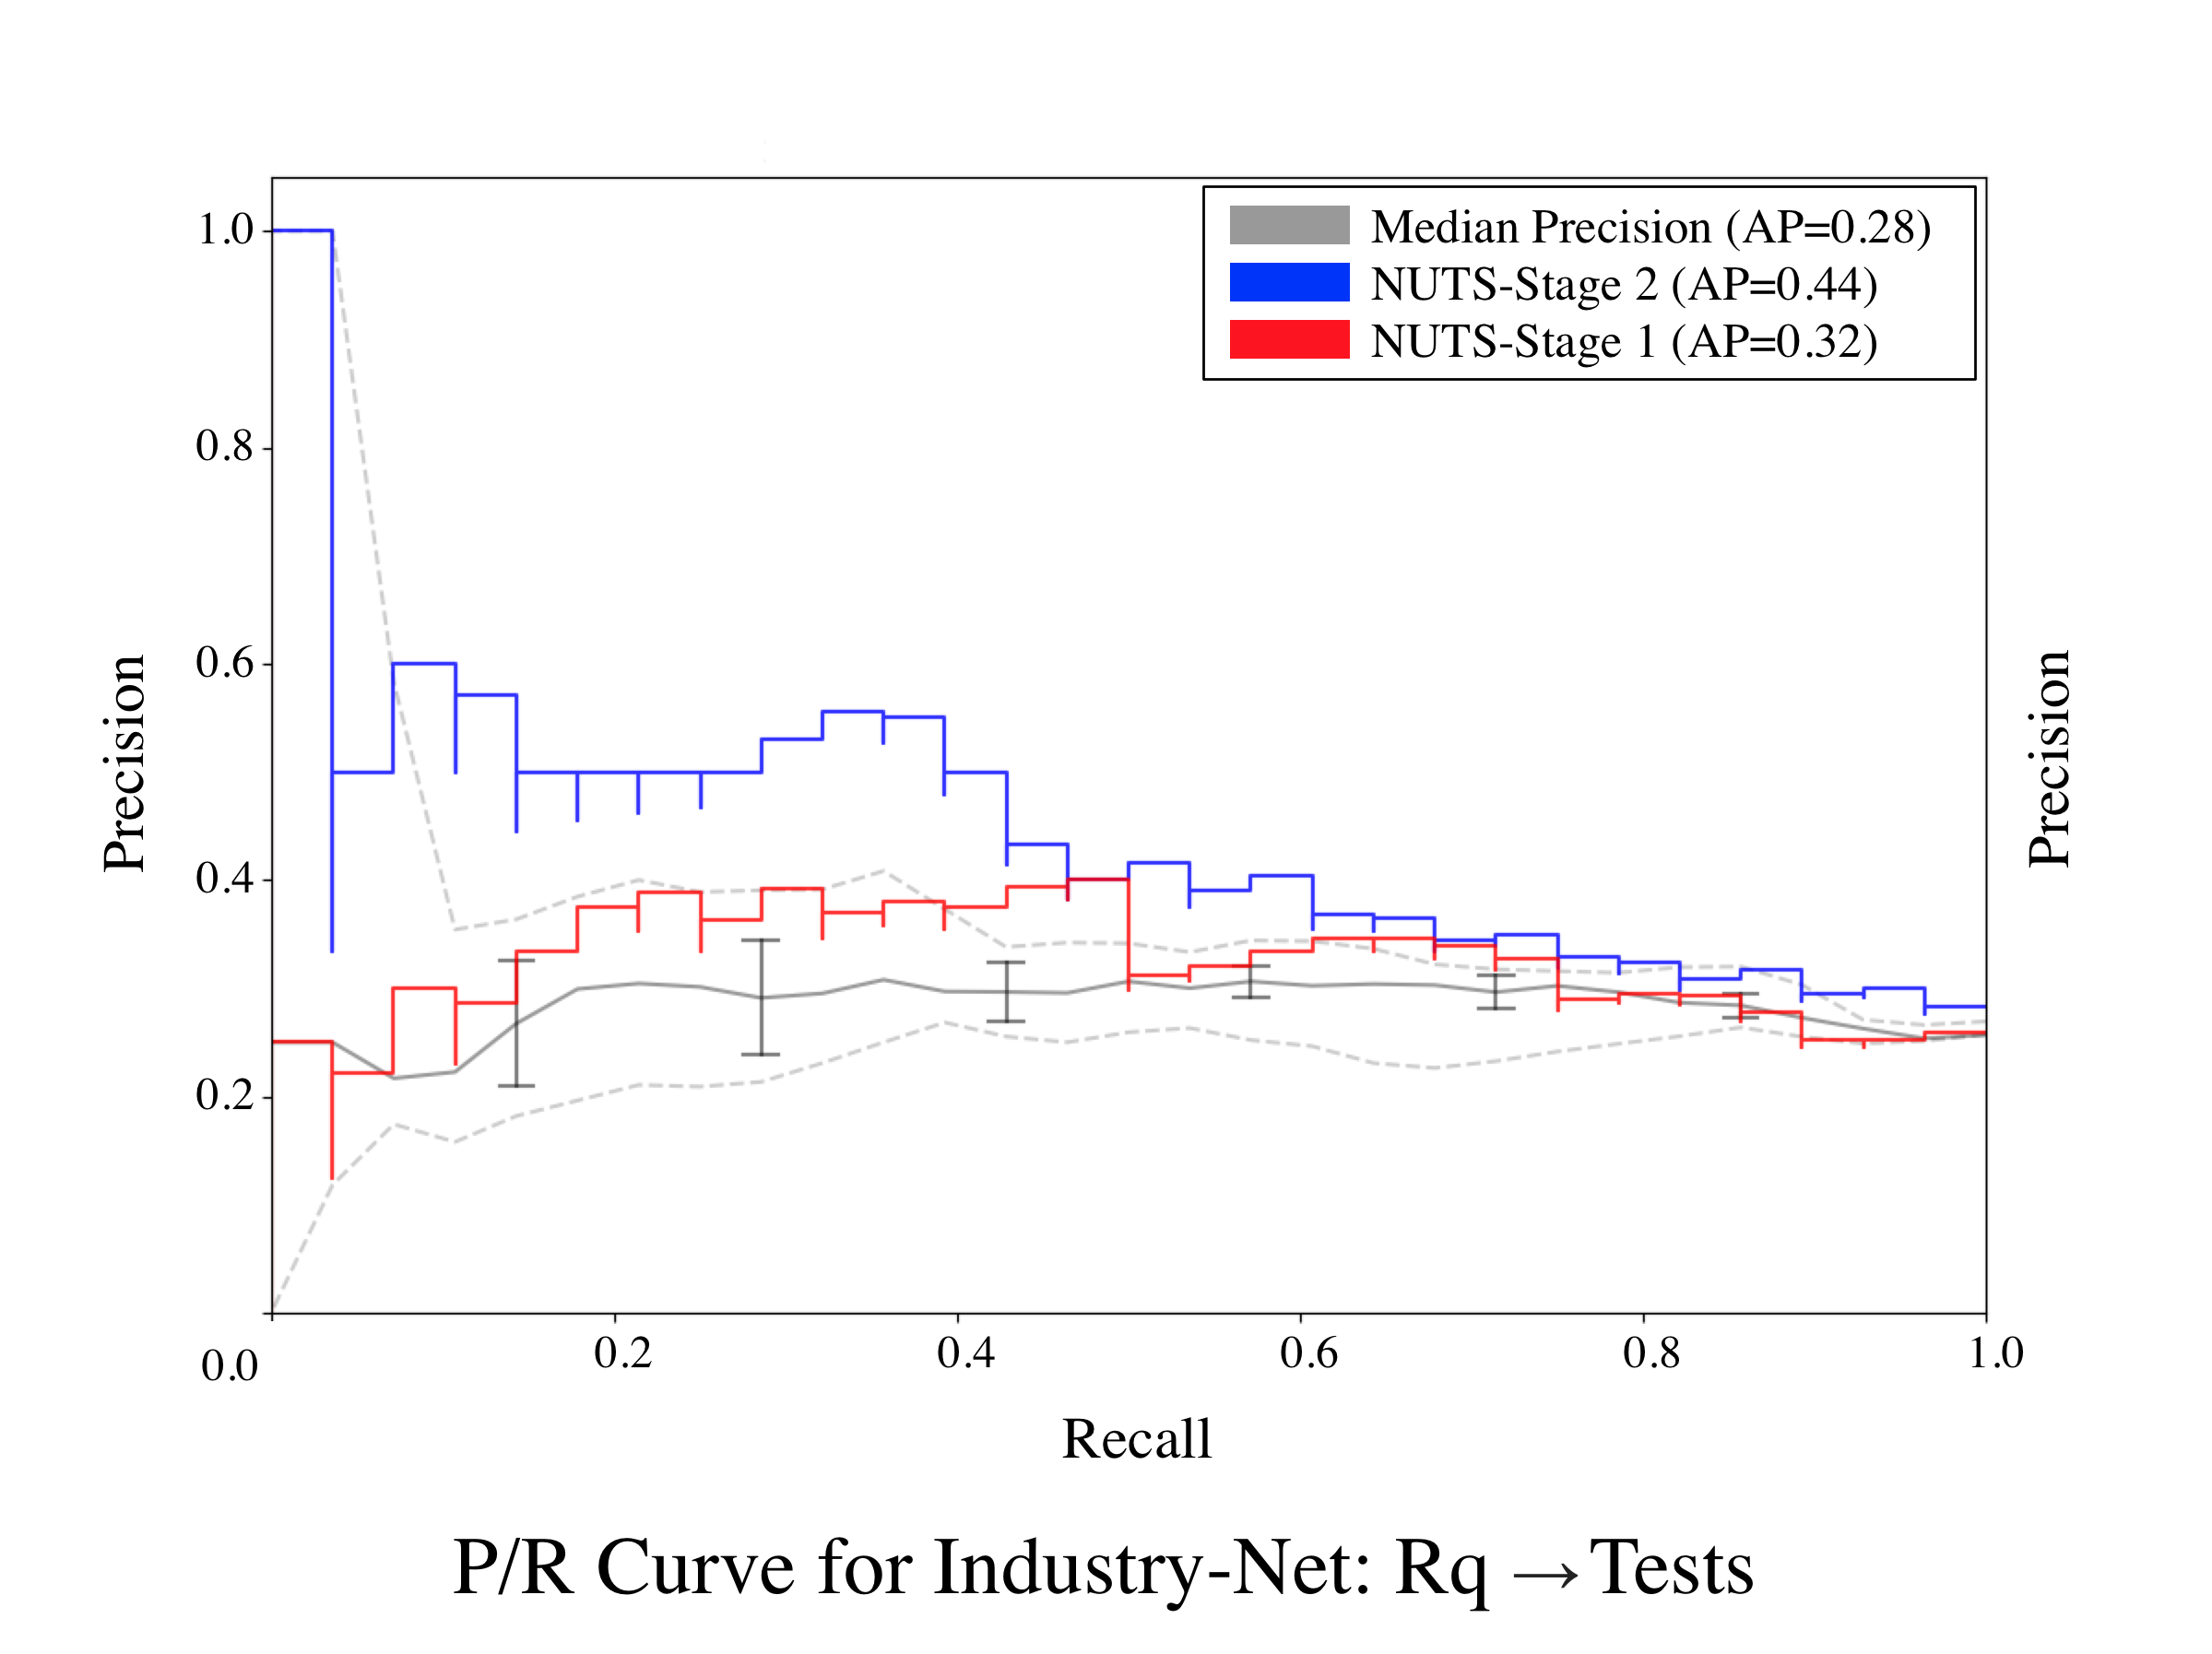 Industry-Net-Req-Tests-50.png